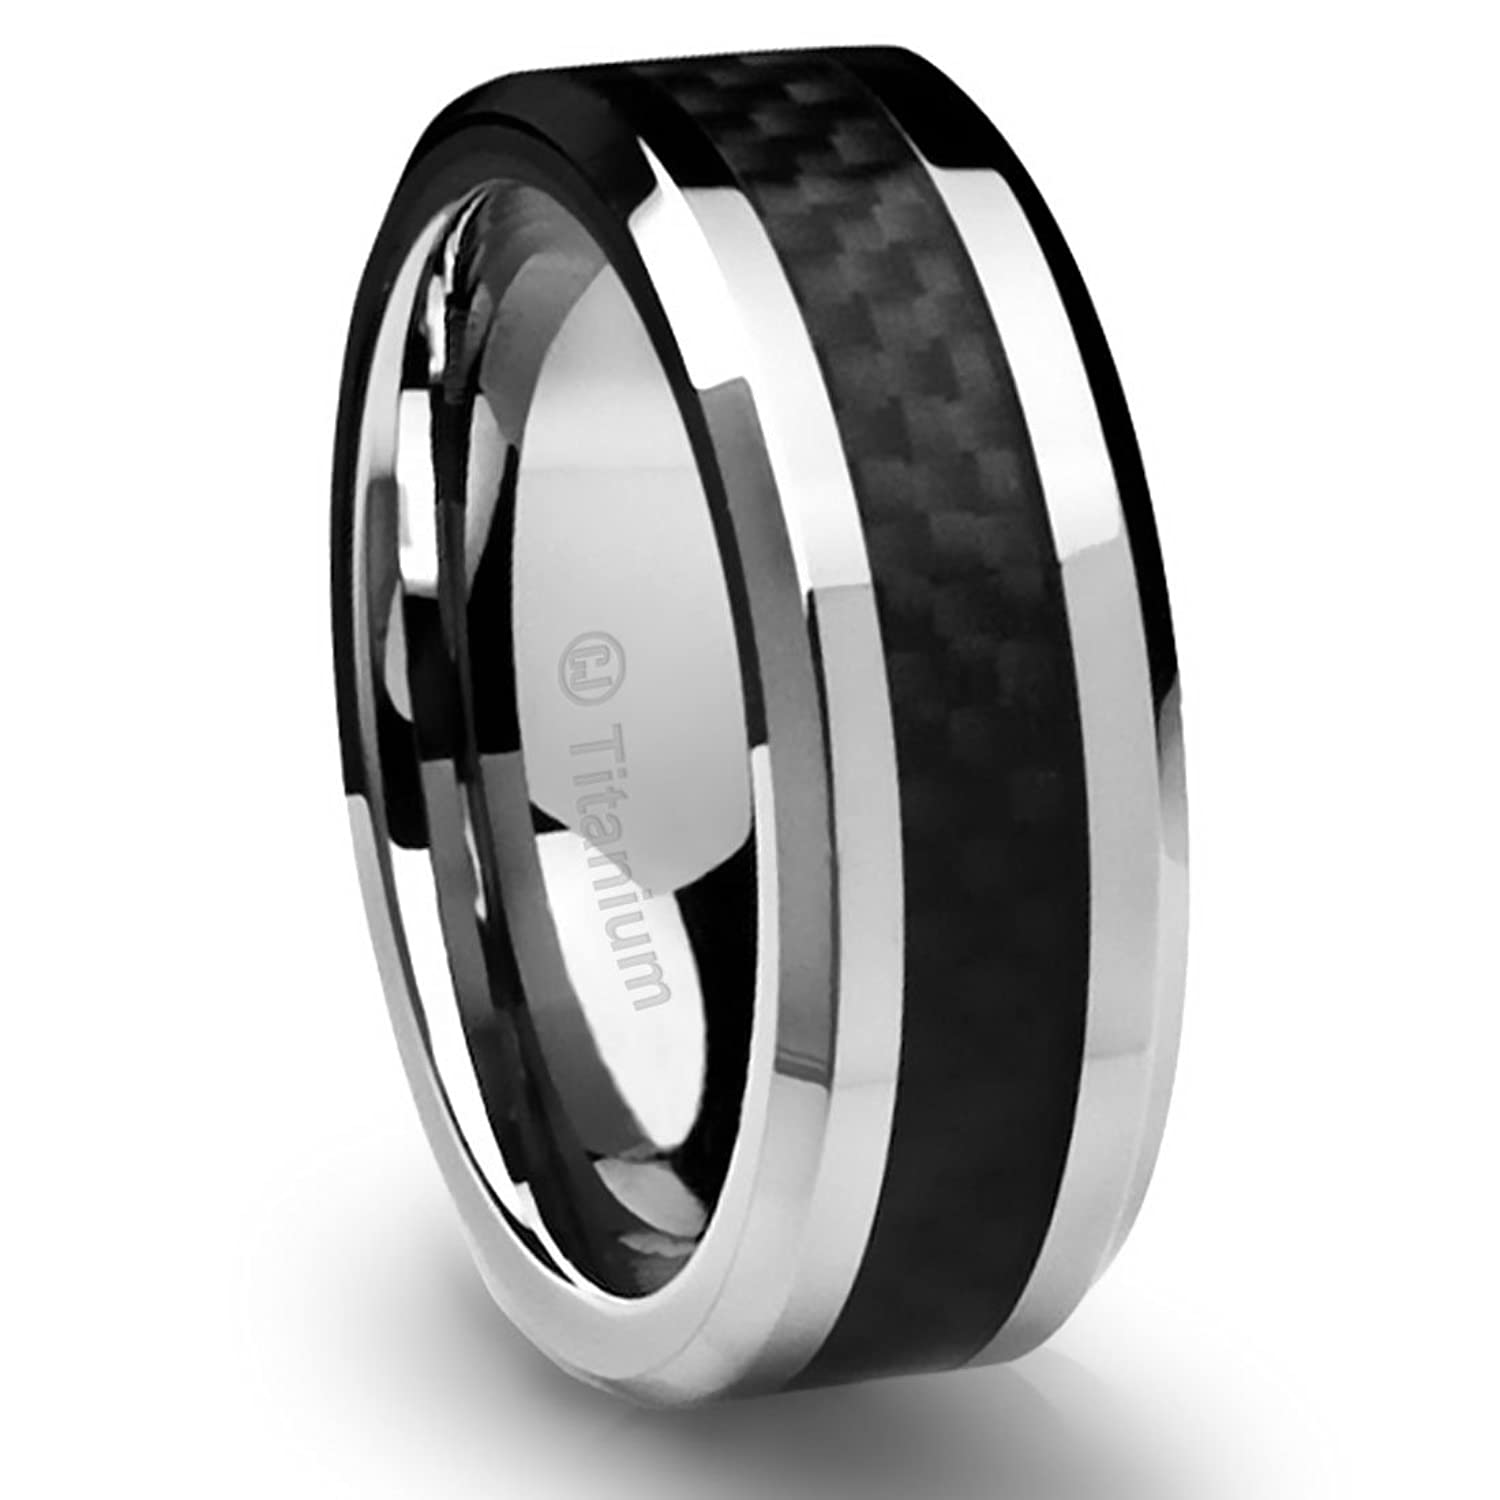 8mm mens titanium ring wedding band black carbon fiber inlay and beveled edges amazoncom - Black Mens Wedding Ring